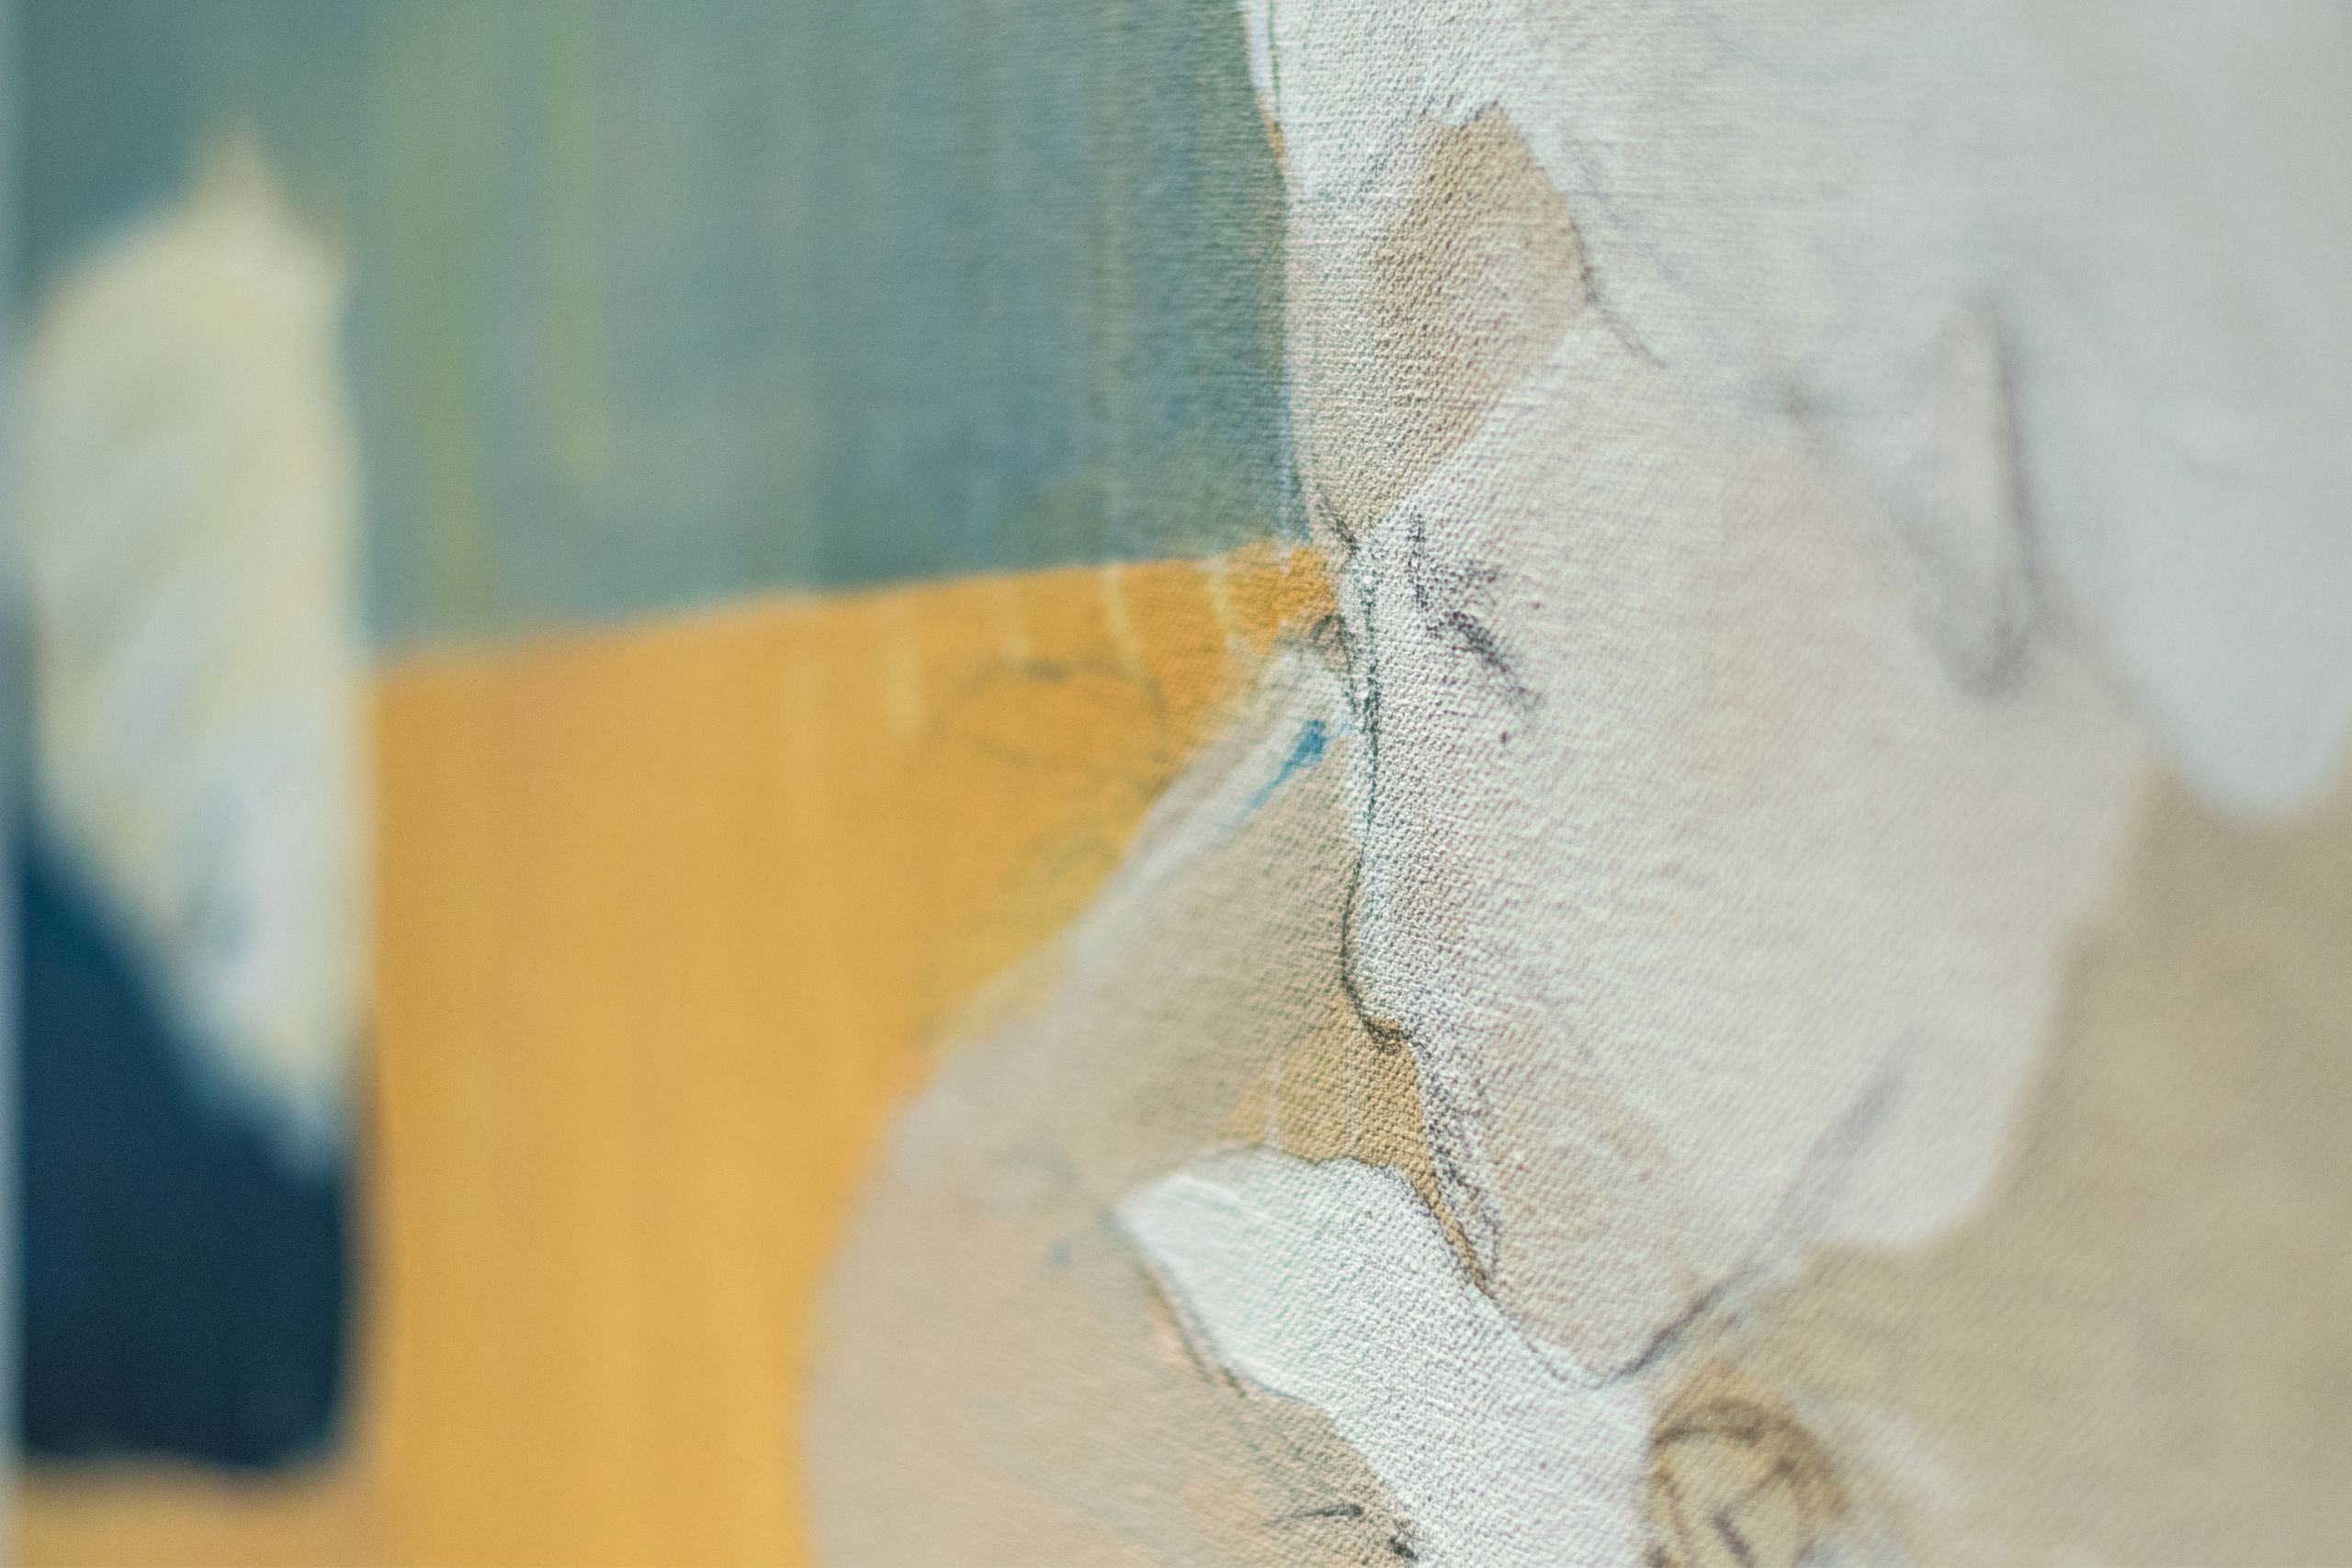 Close-up of painting showing tan, yellow and teal tones.